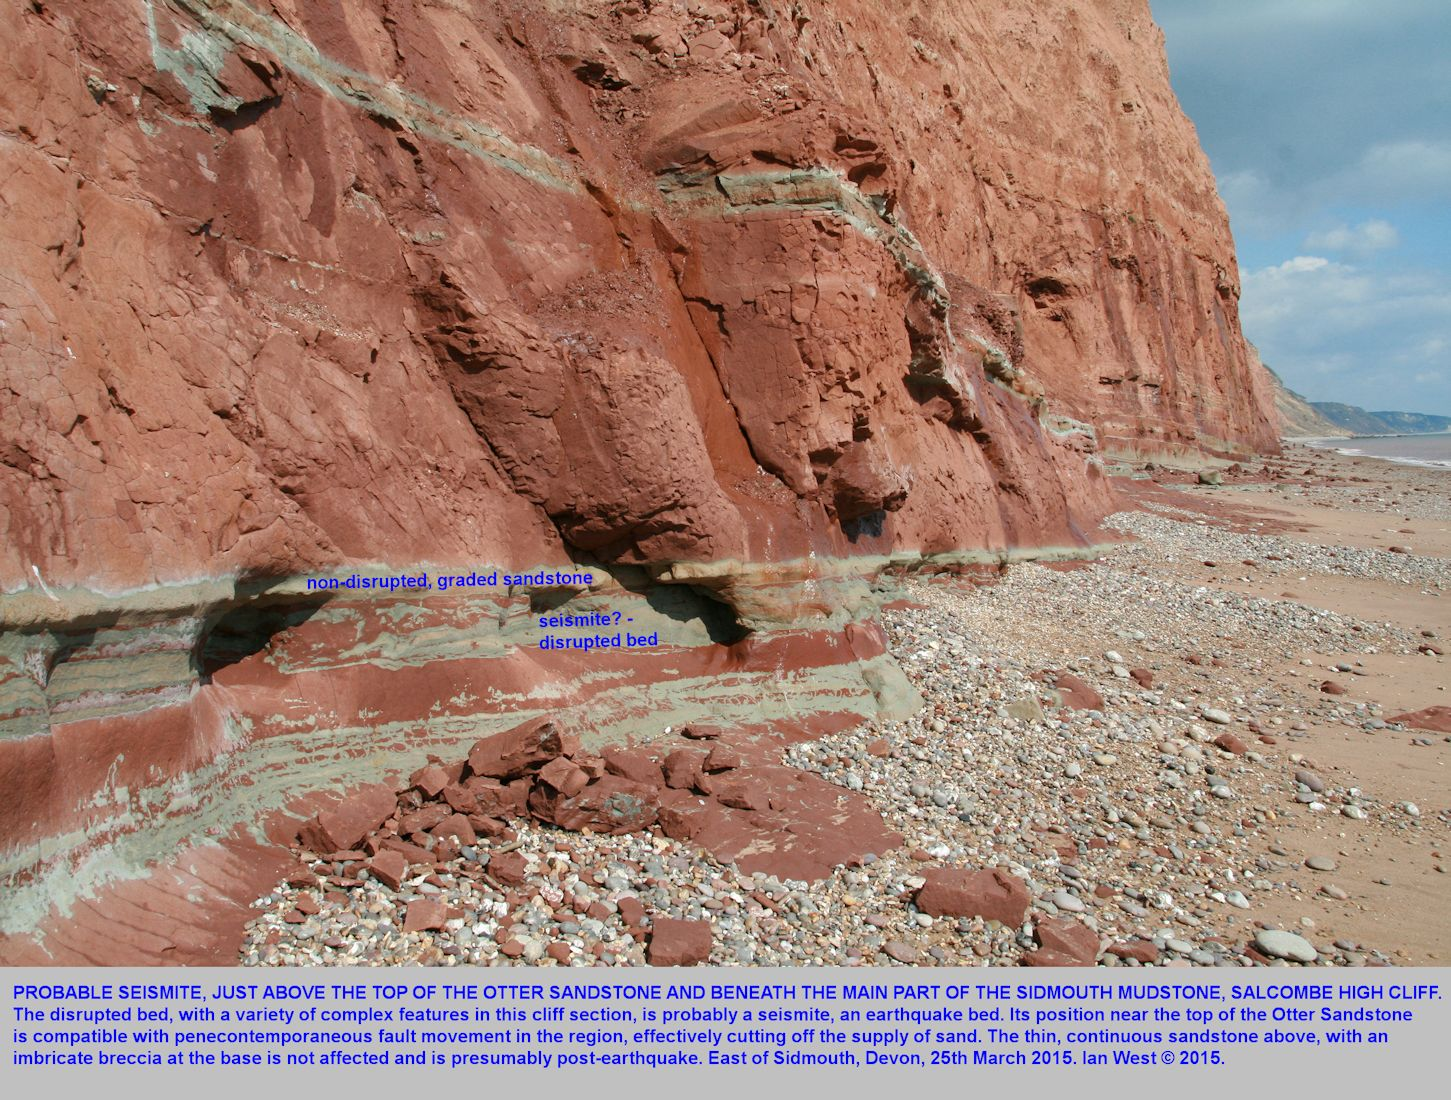 A probable seismite near the base of the Sidmouth Mudstone Formation, east of Pennington Point, Sidmouth, Devon